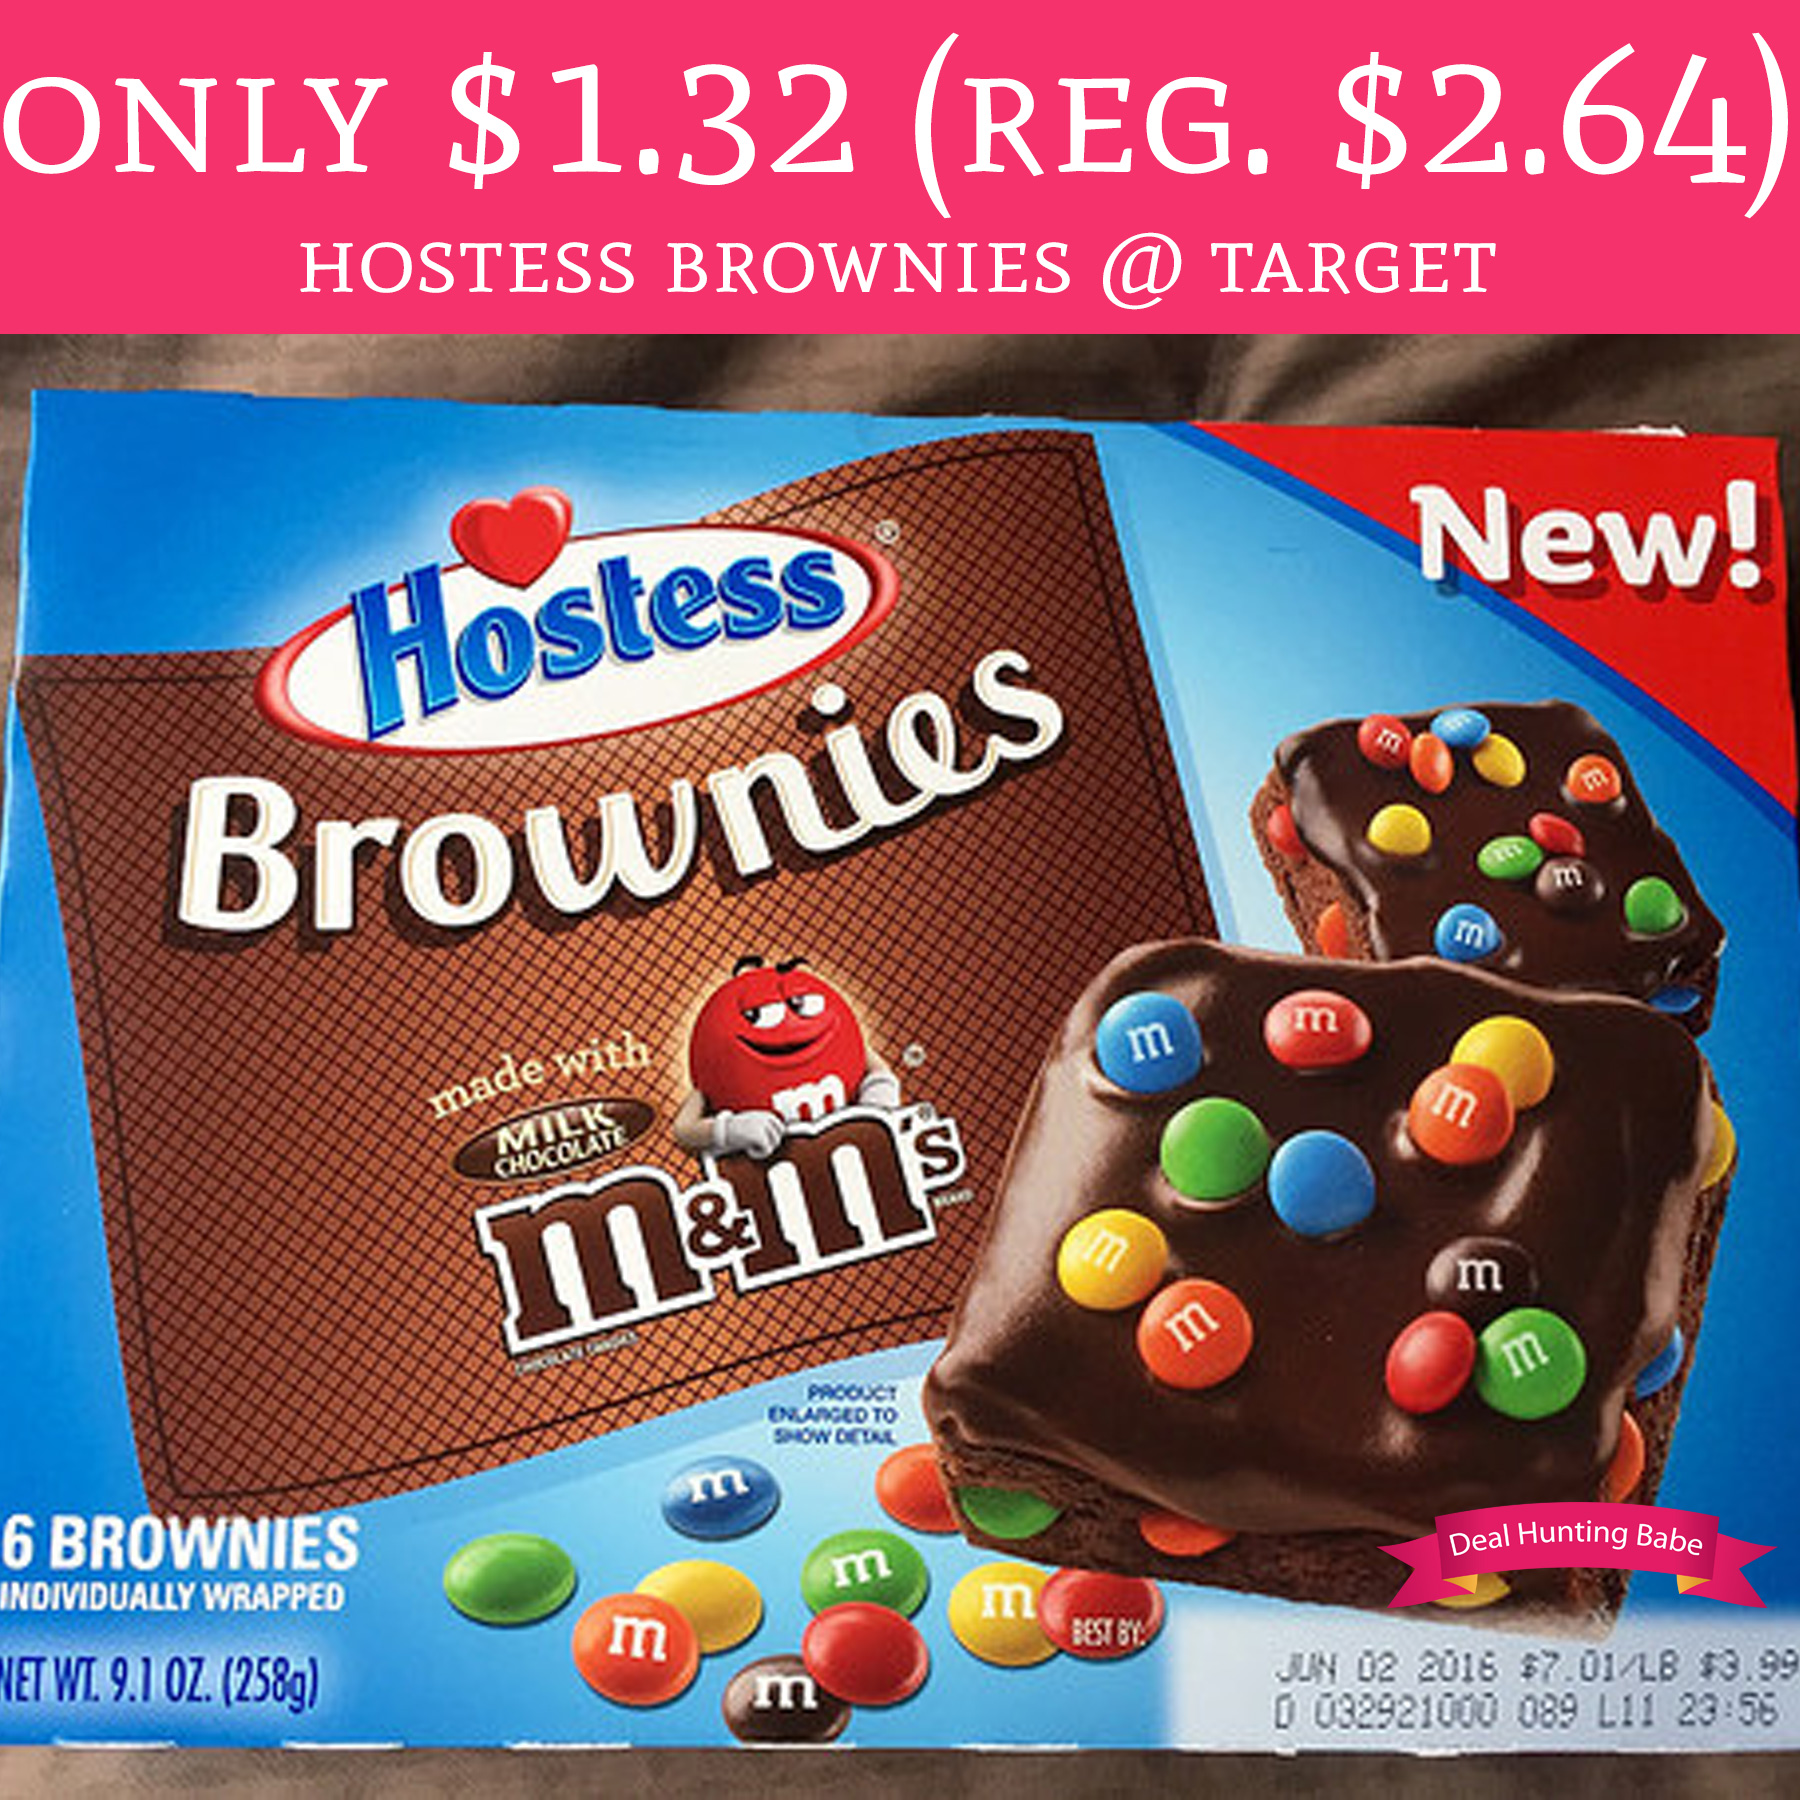 only  1 32  regular  2 64  hostess brownies